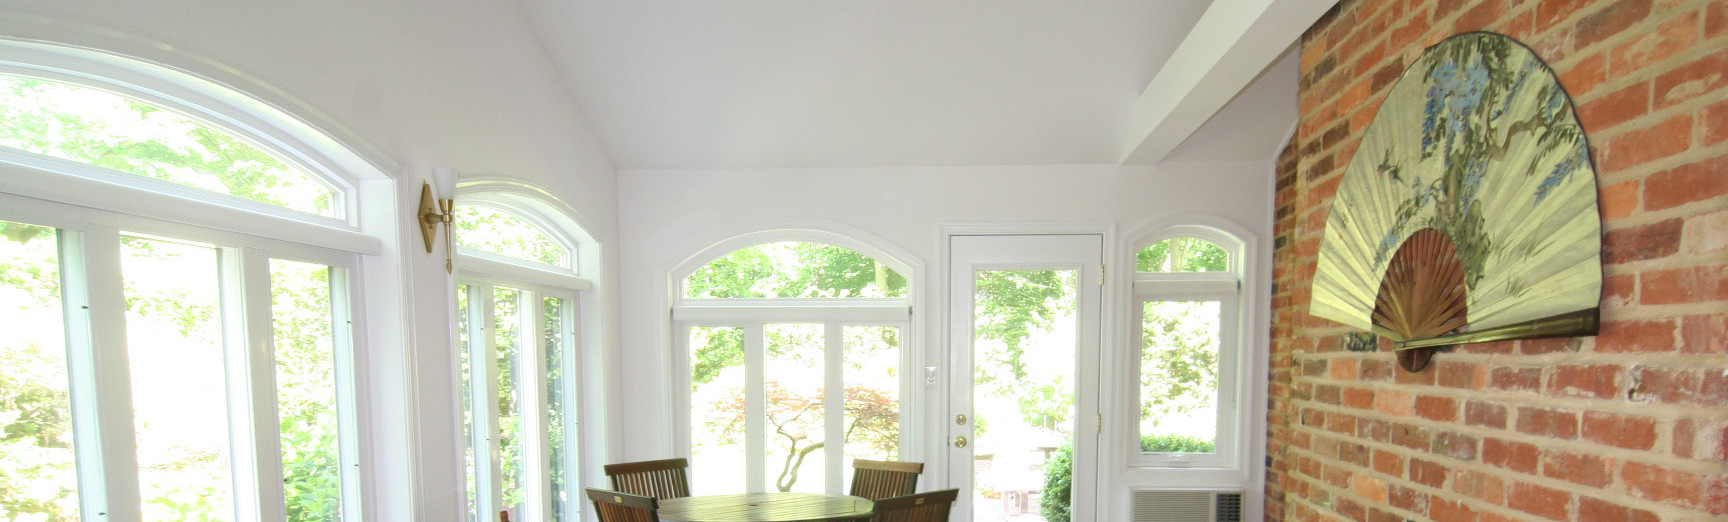 Expert Remodeling Tips by The Rozansky Group of Potomac, MD Real Estate